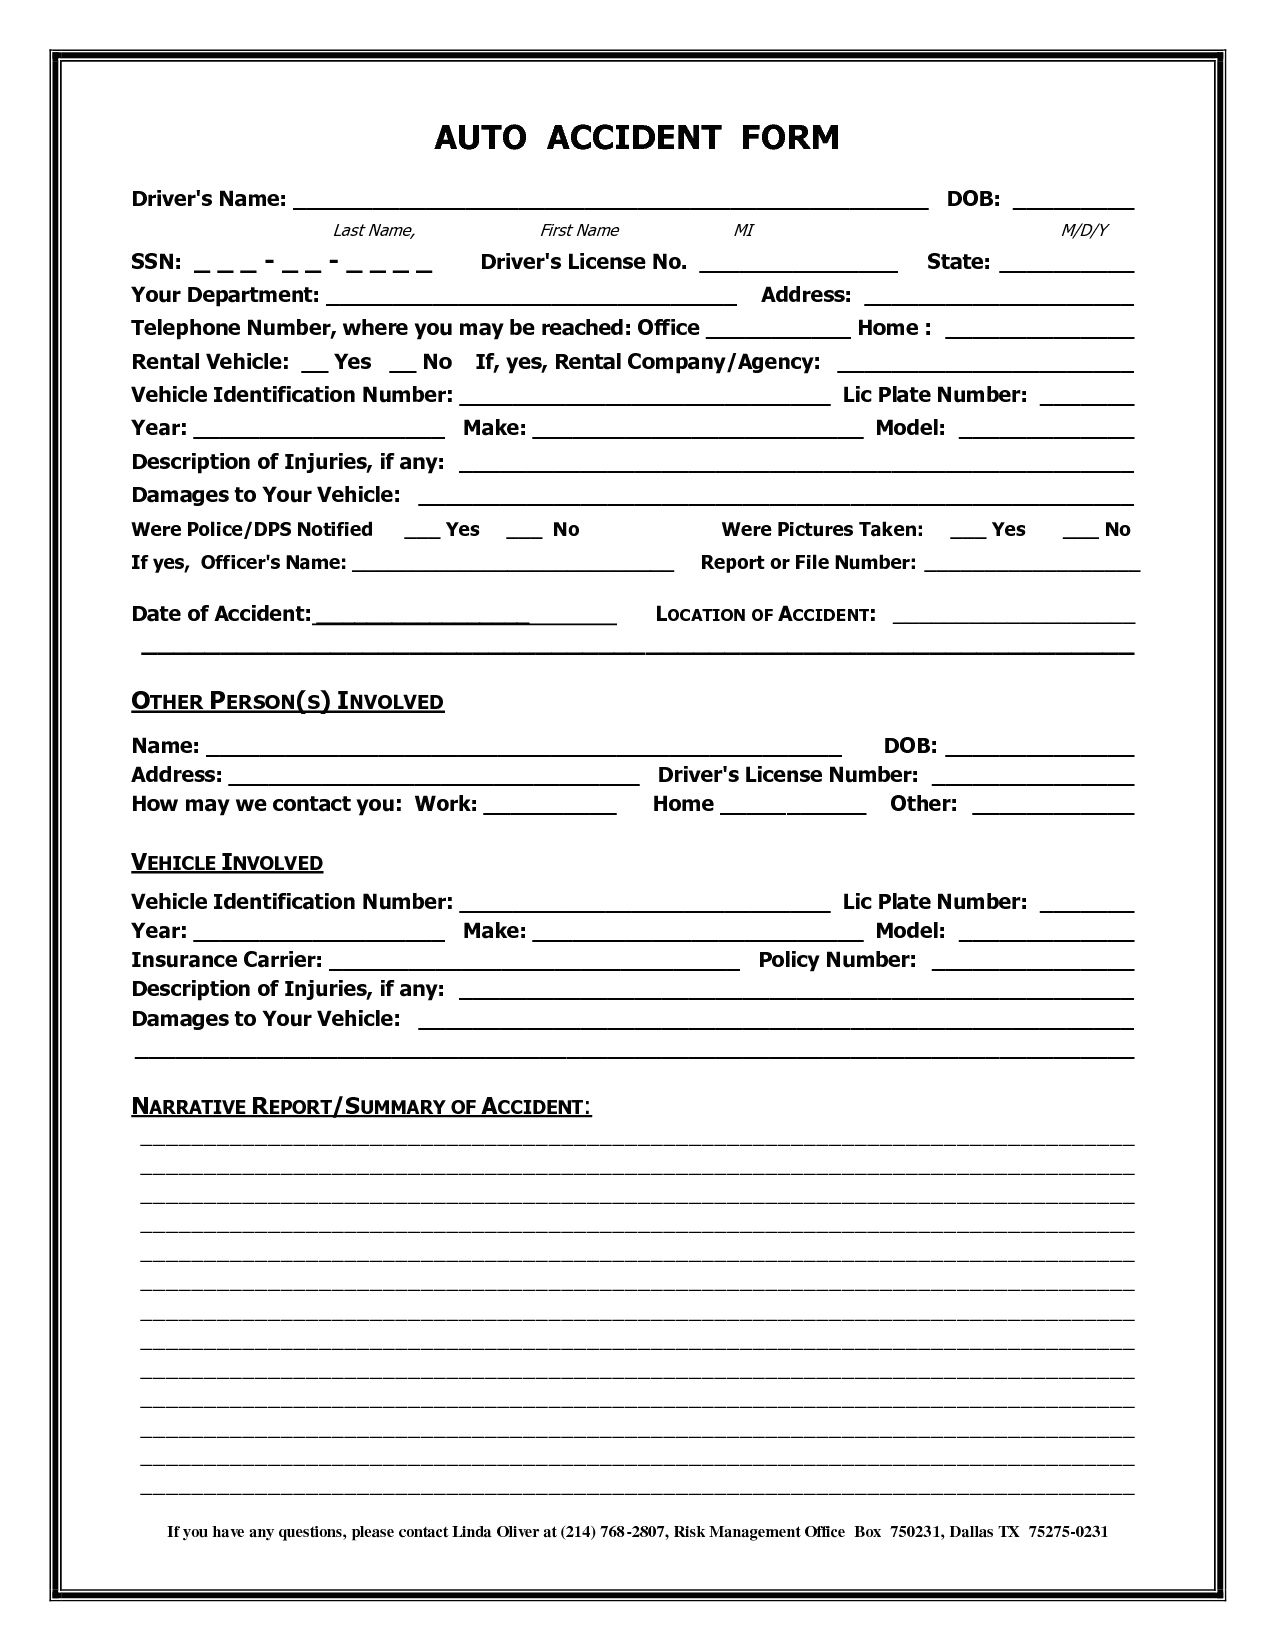 Accident Report Template For Rental Car Insurance How To With Regard To Vehicle Accident Report Form Template